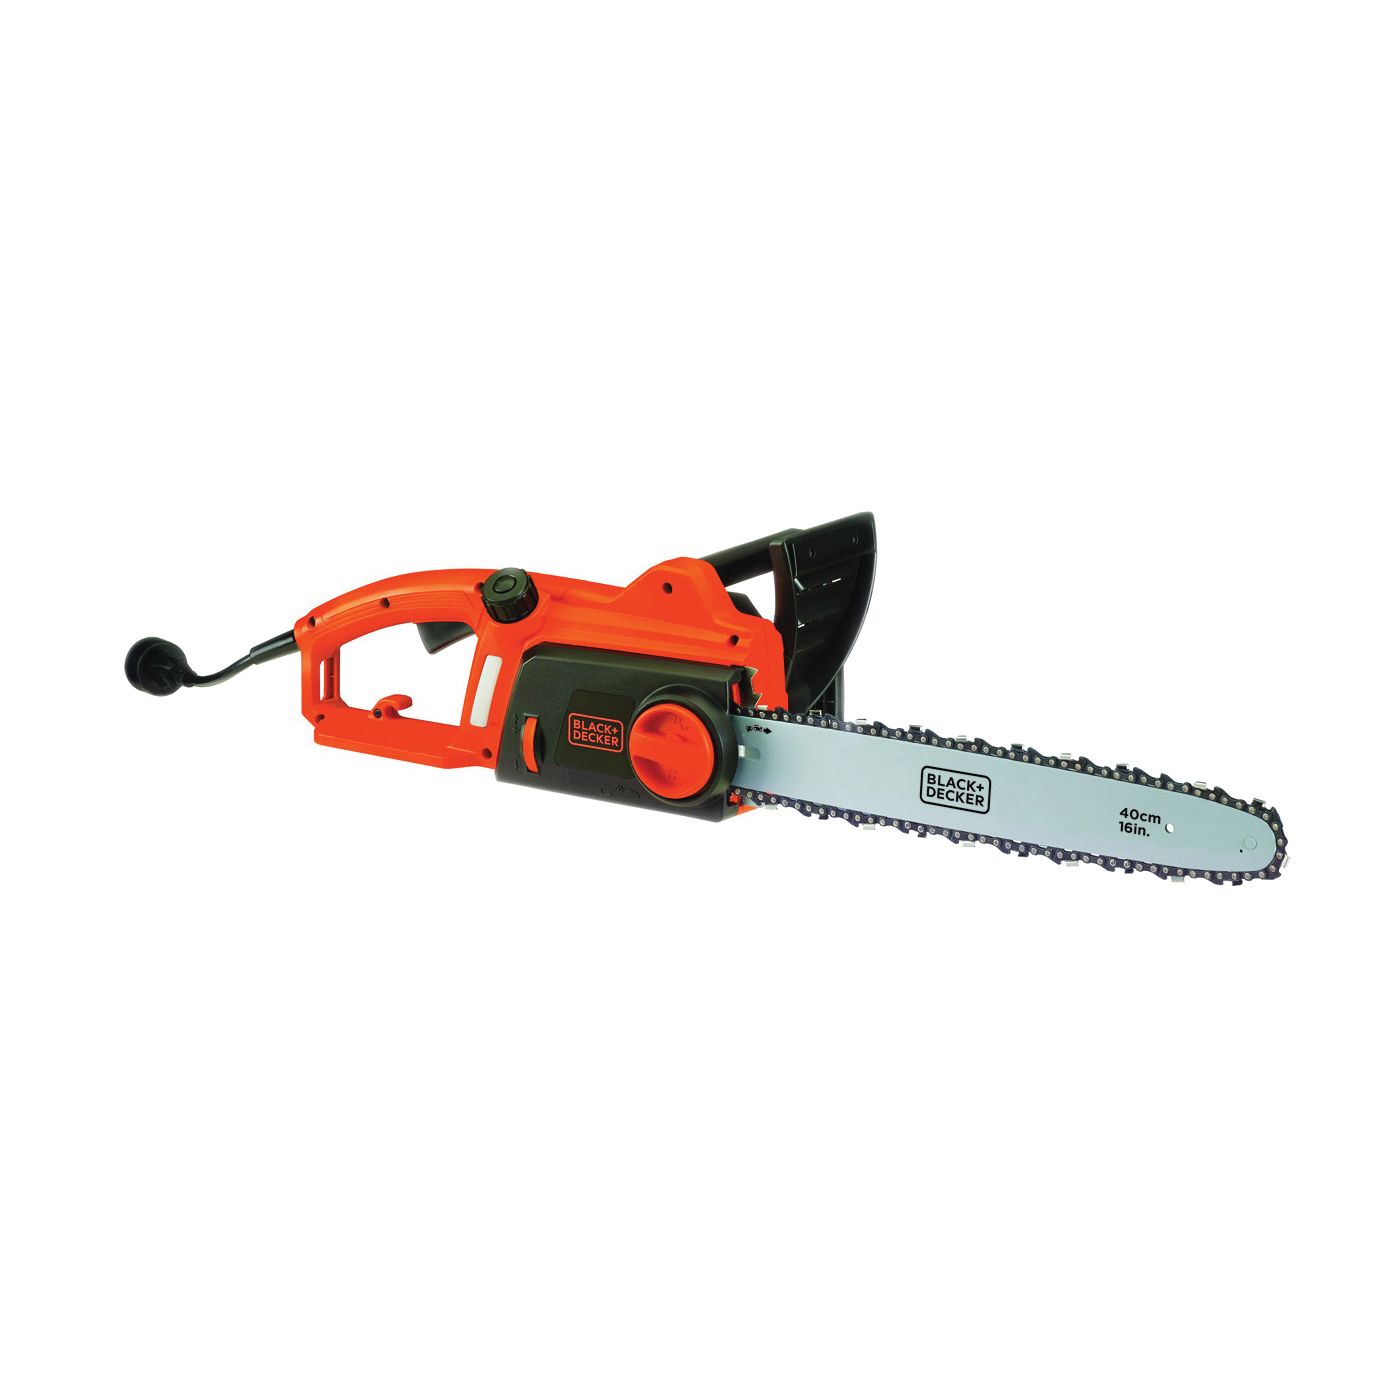 Picture of Black+Decker CS1216 Electric Chainsaw, 12 A, 120 V, 16 in L Bar/Chain